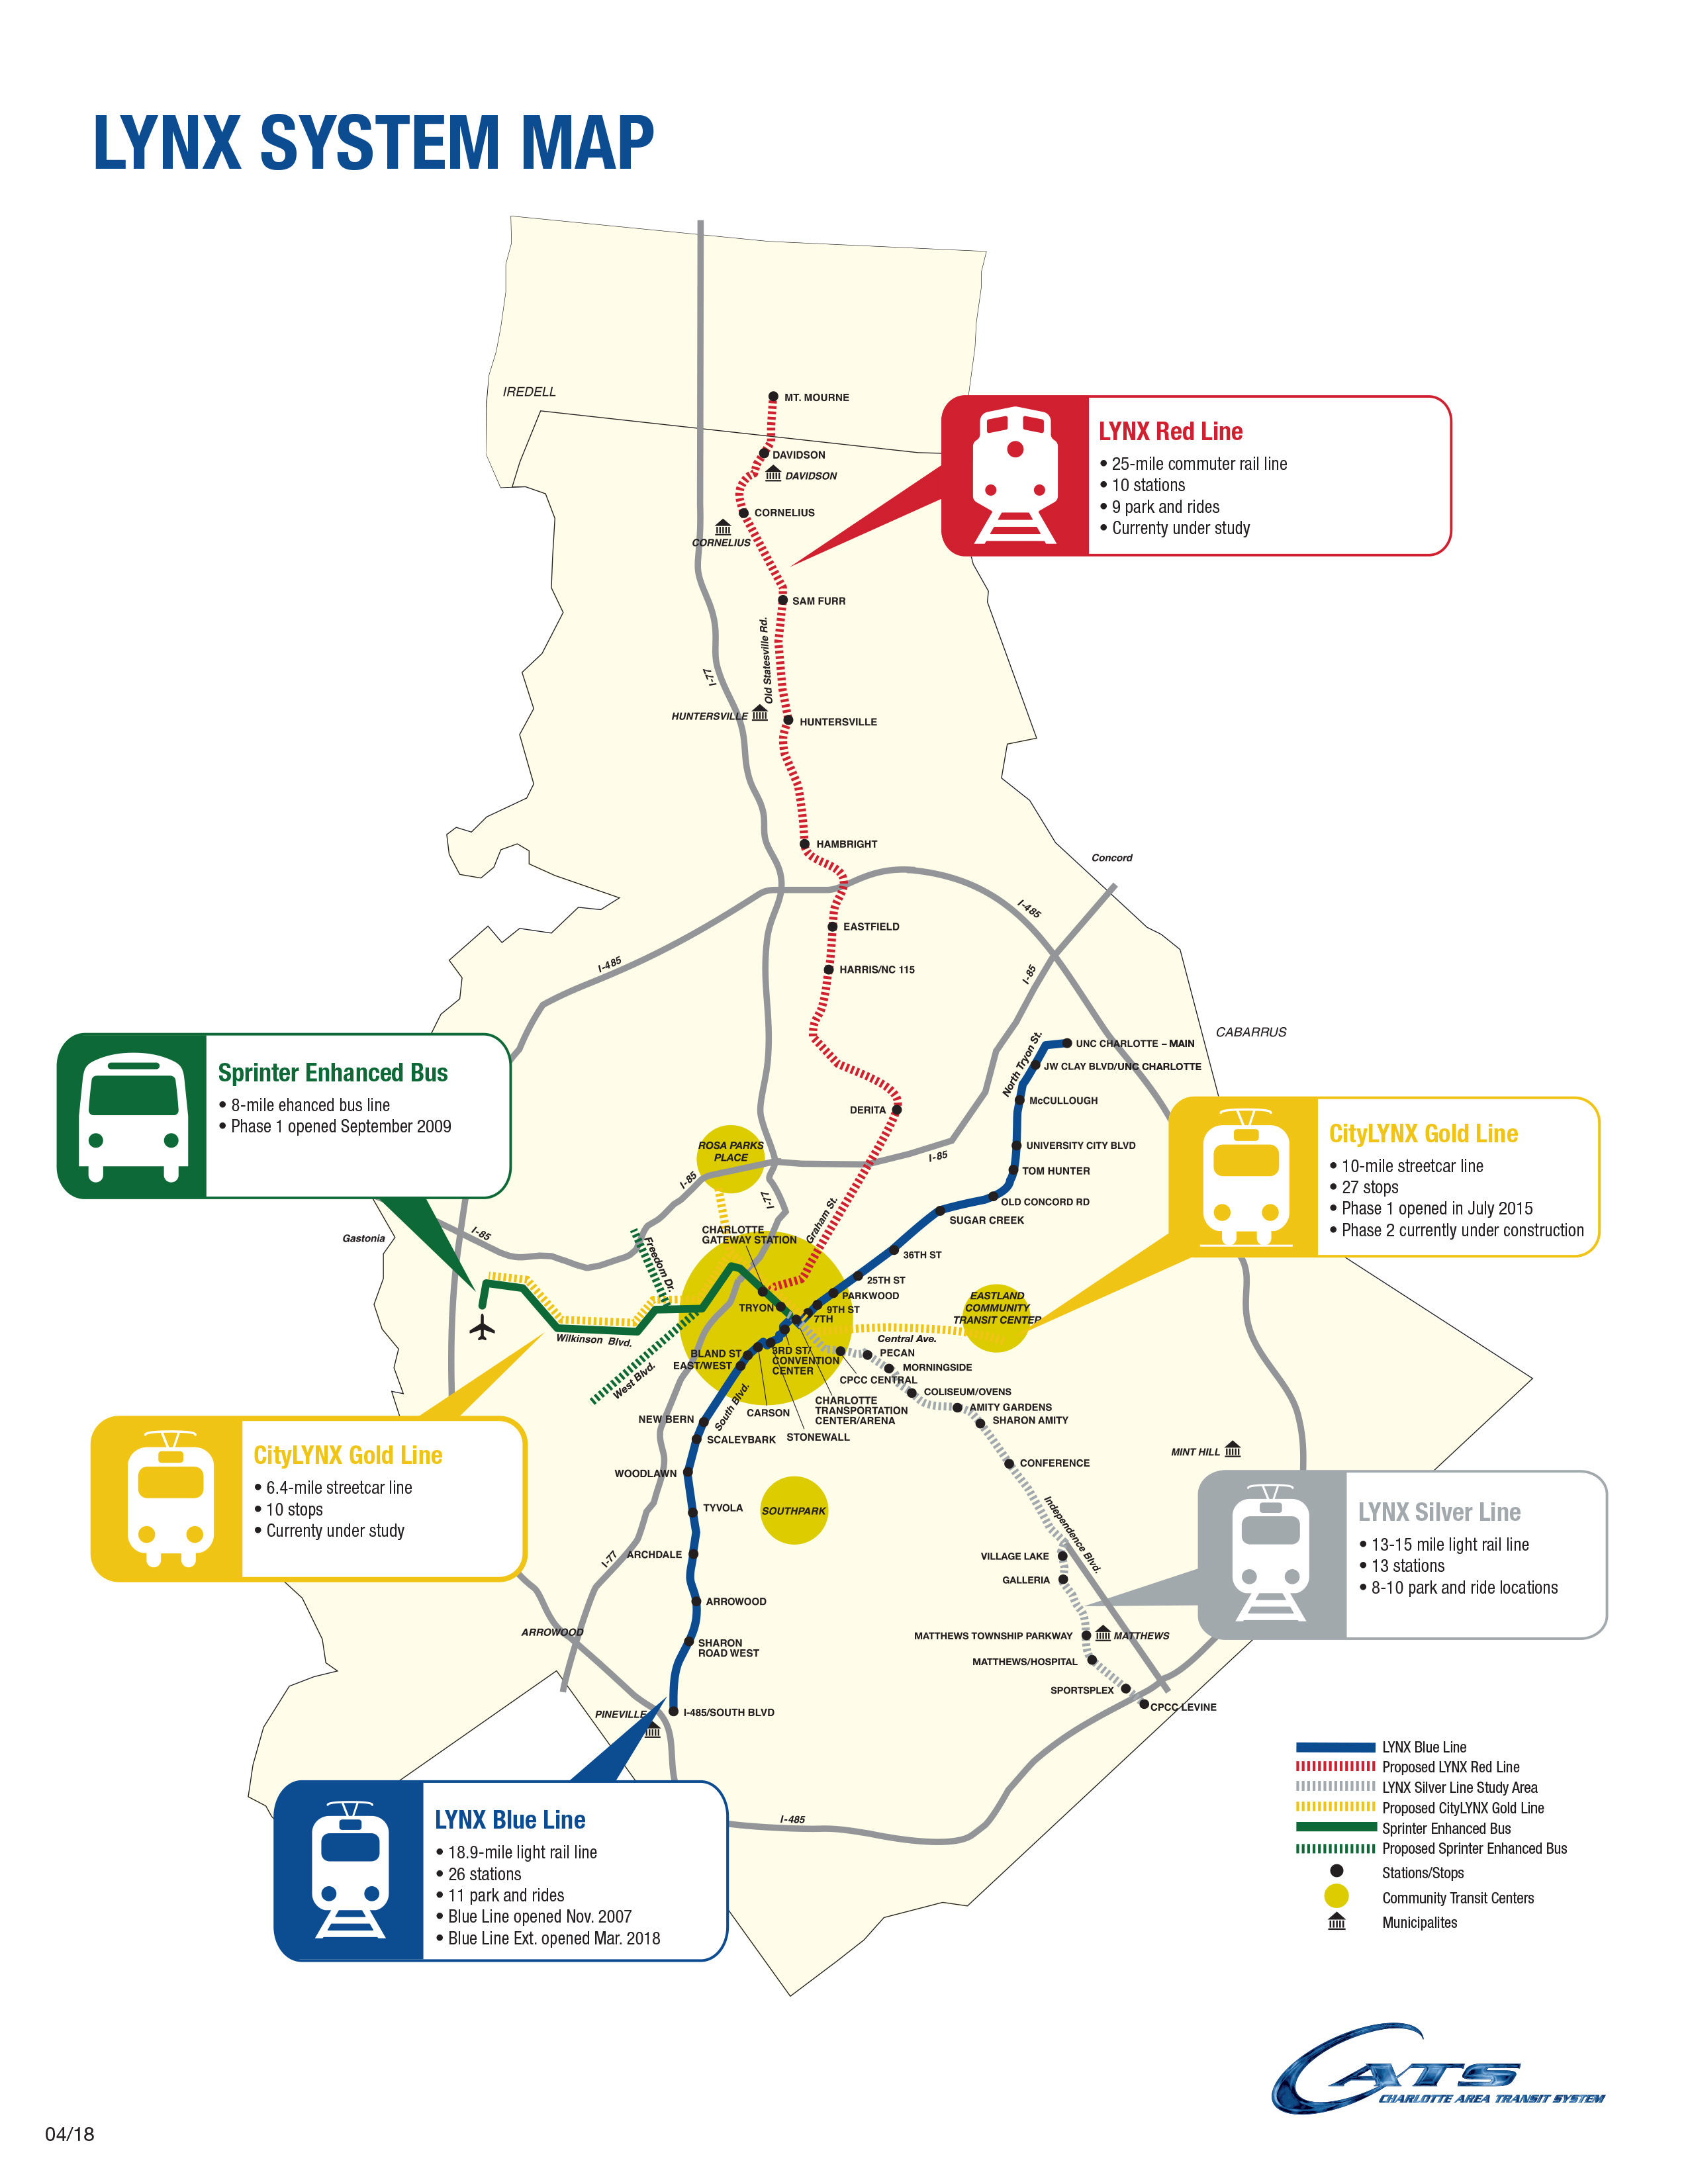 Charlotte Lynx Map 2030 Plan > Home Charlotte Lynx Map&#8221; title=&#8221;Charlotte Lynx Map 2030 Plan > Home Charlotte Lynx Map&#8221; width=&#8221;200&#8243; height=&#8221;200&#8243;> <img src=